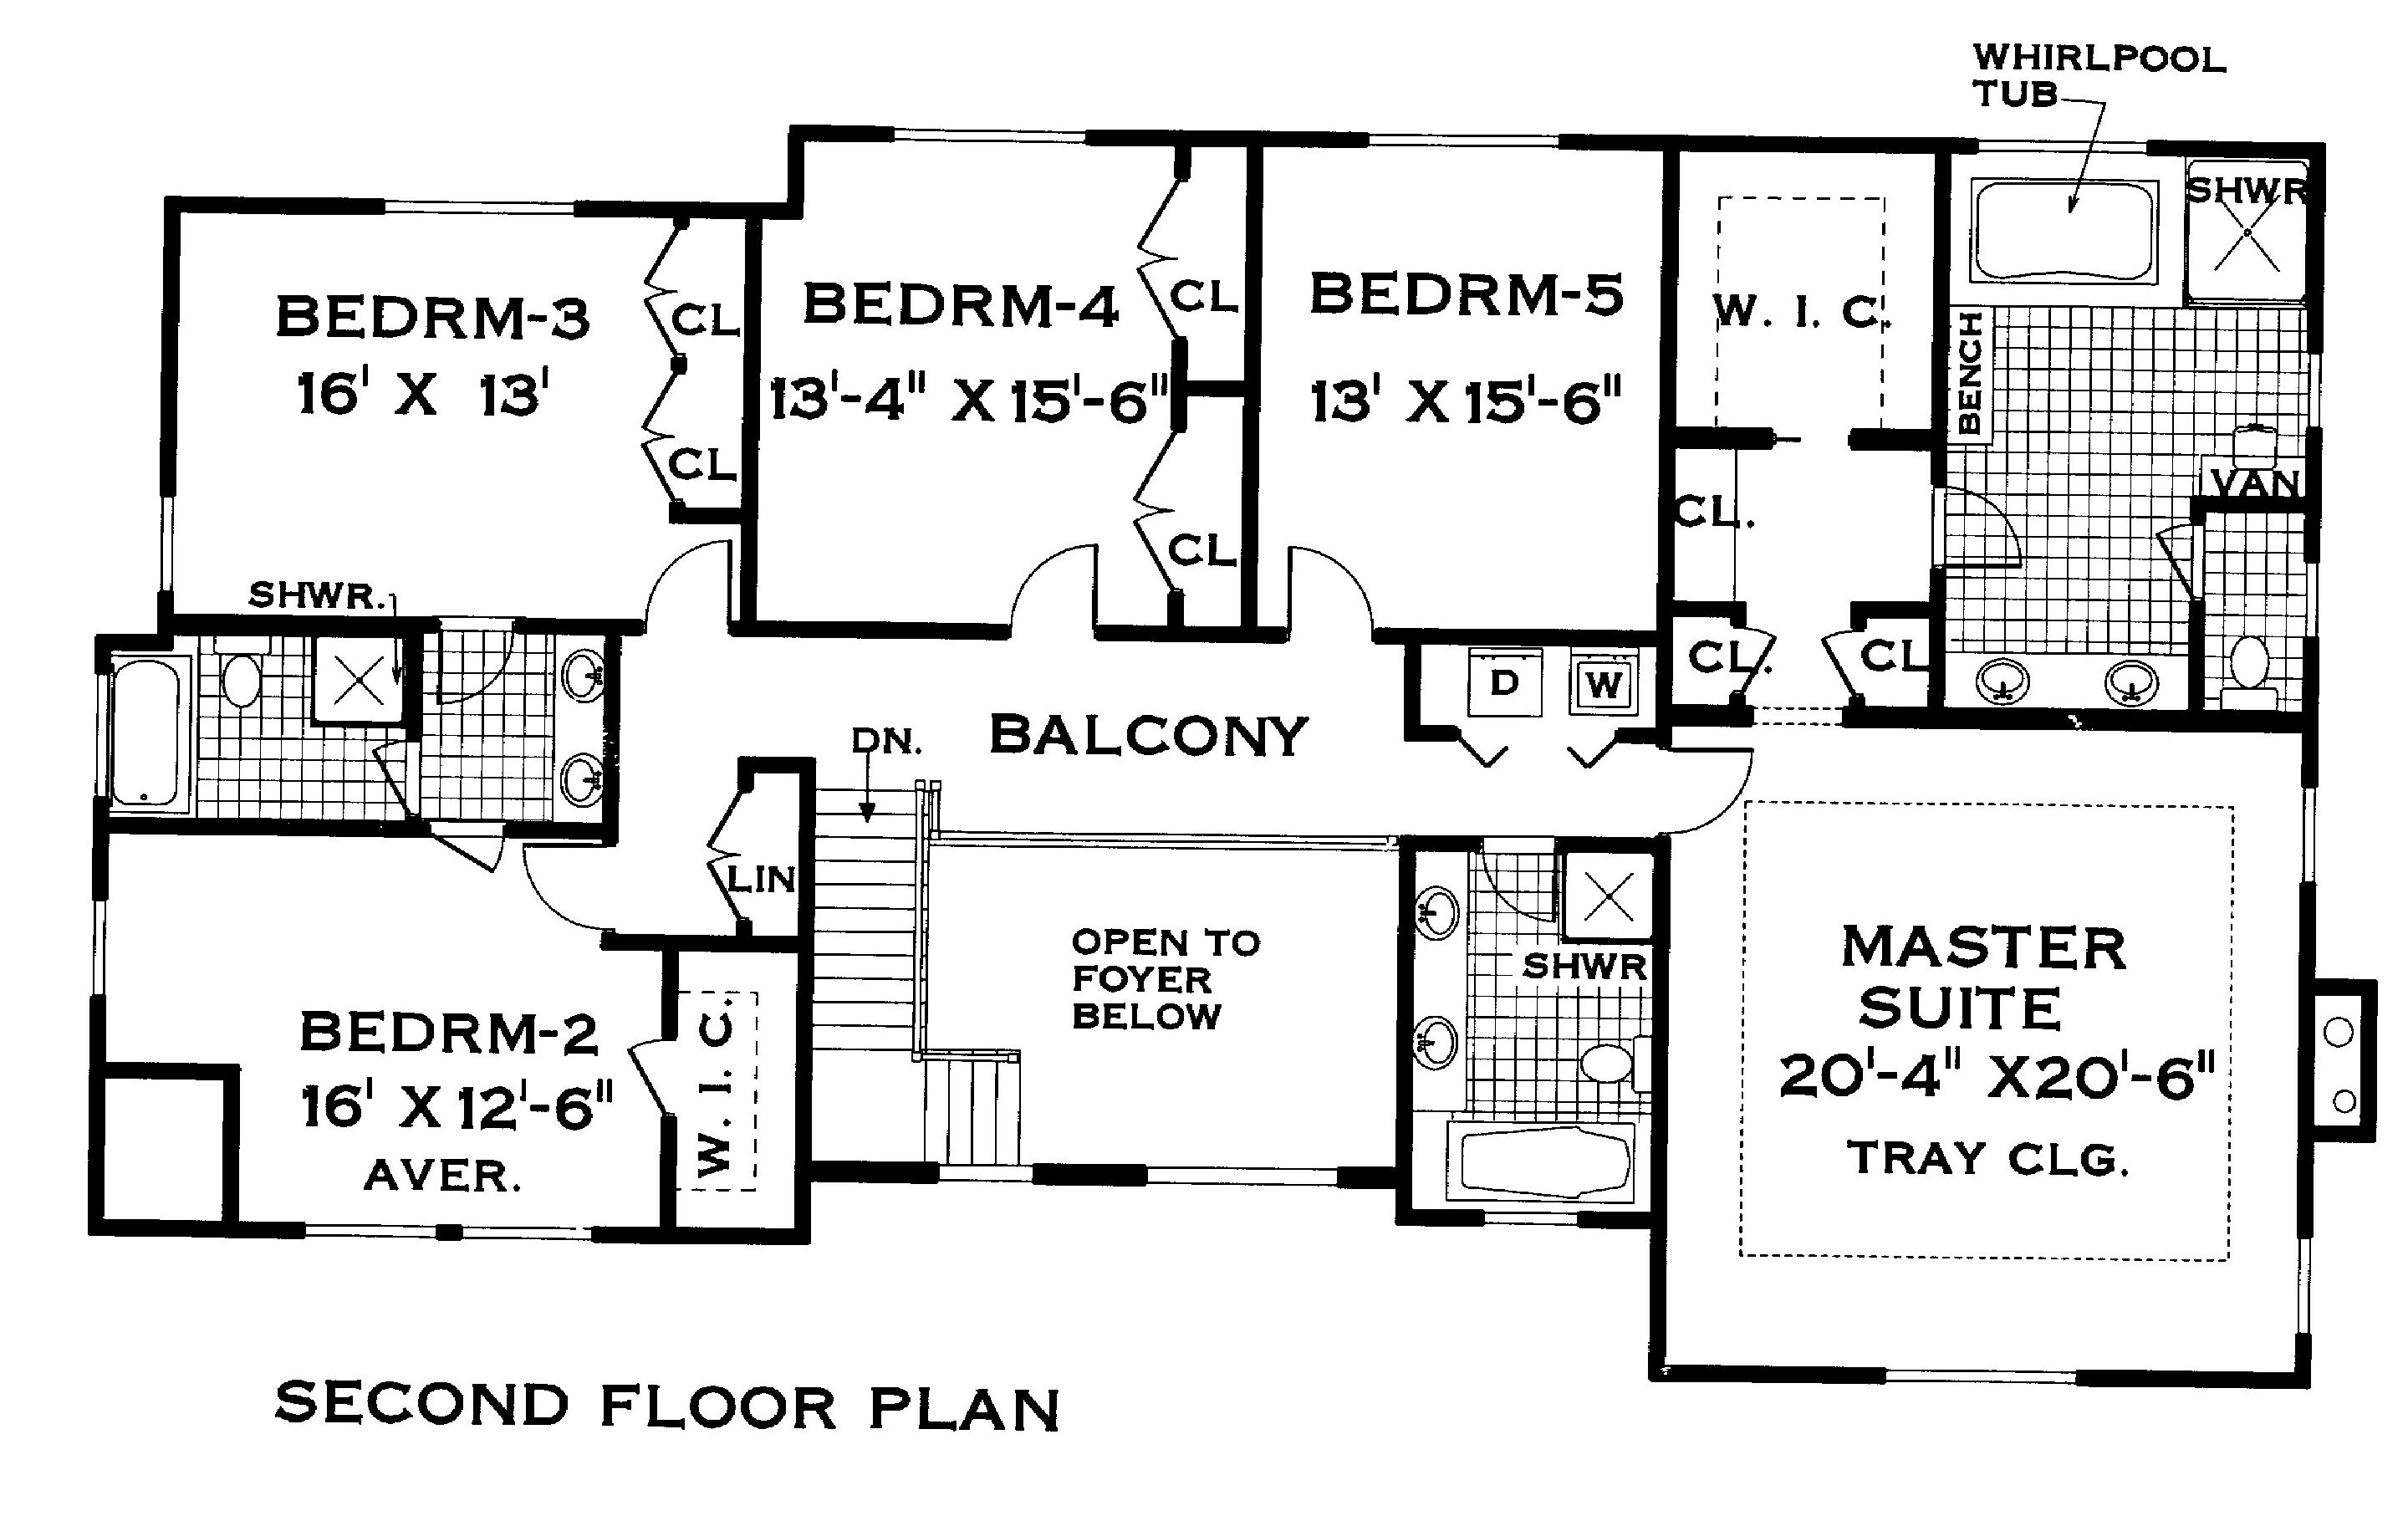 House floor plans with dimensions house plans home designs for House plans with dimensions